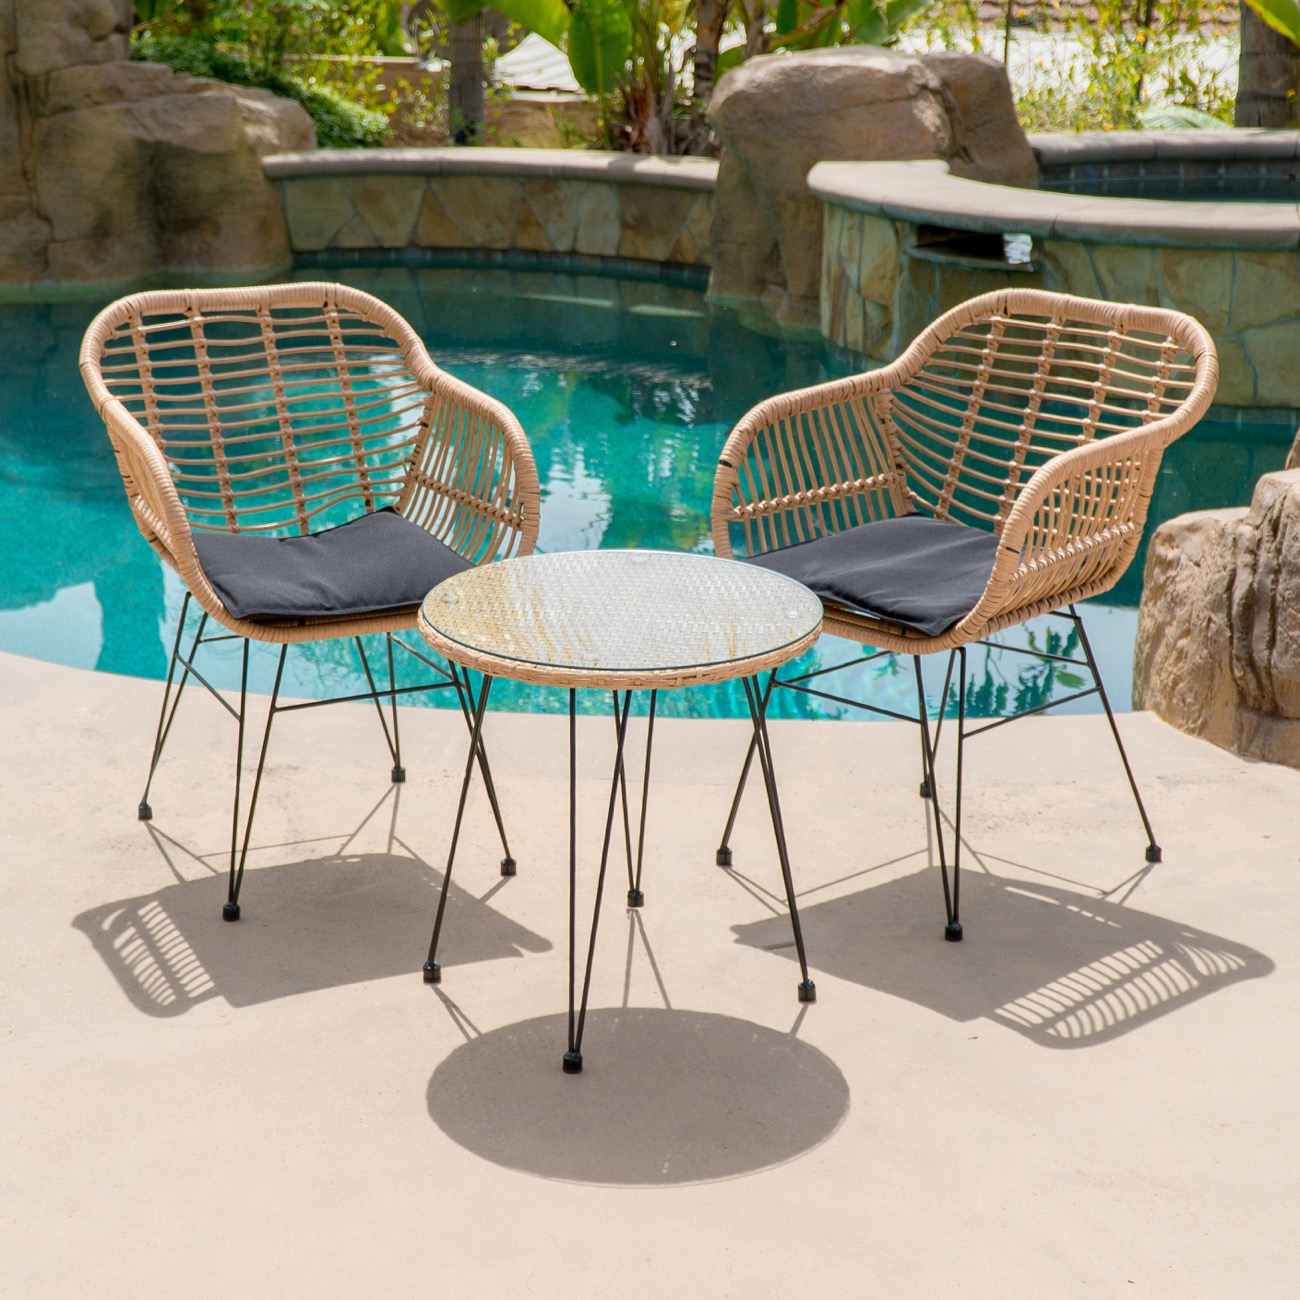 Cool Details About 3 Piece Bistro Chairs Patio Set Glass Coffee Table Uv Resistant W Cushion Beige Interior Design Ideas Pimpapslepicentreinfo